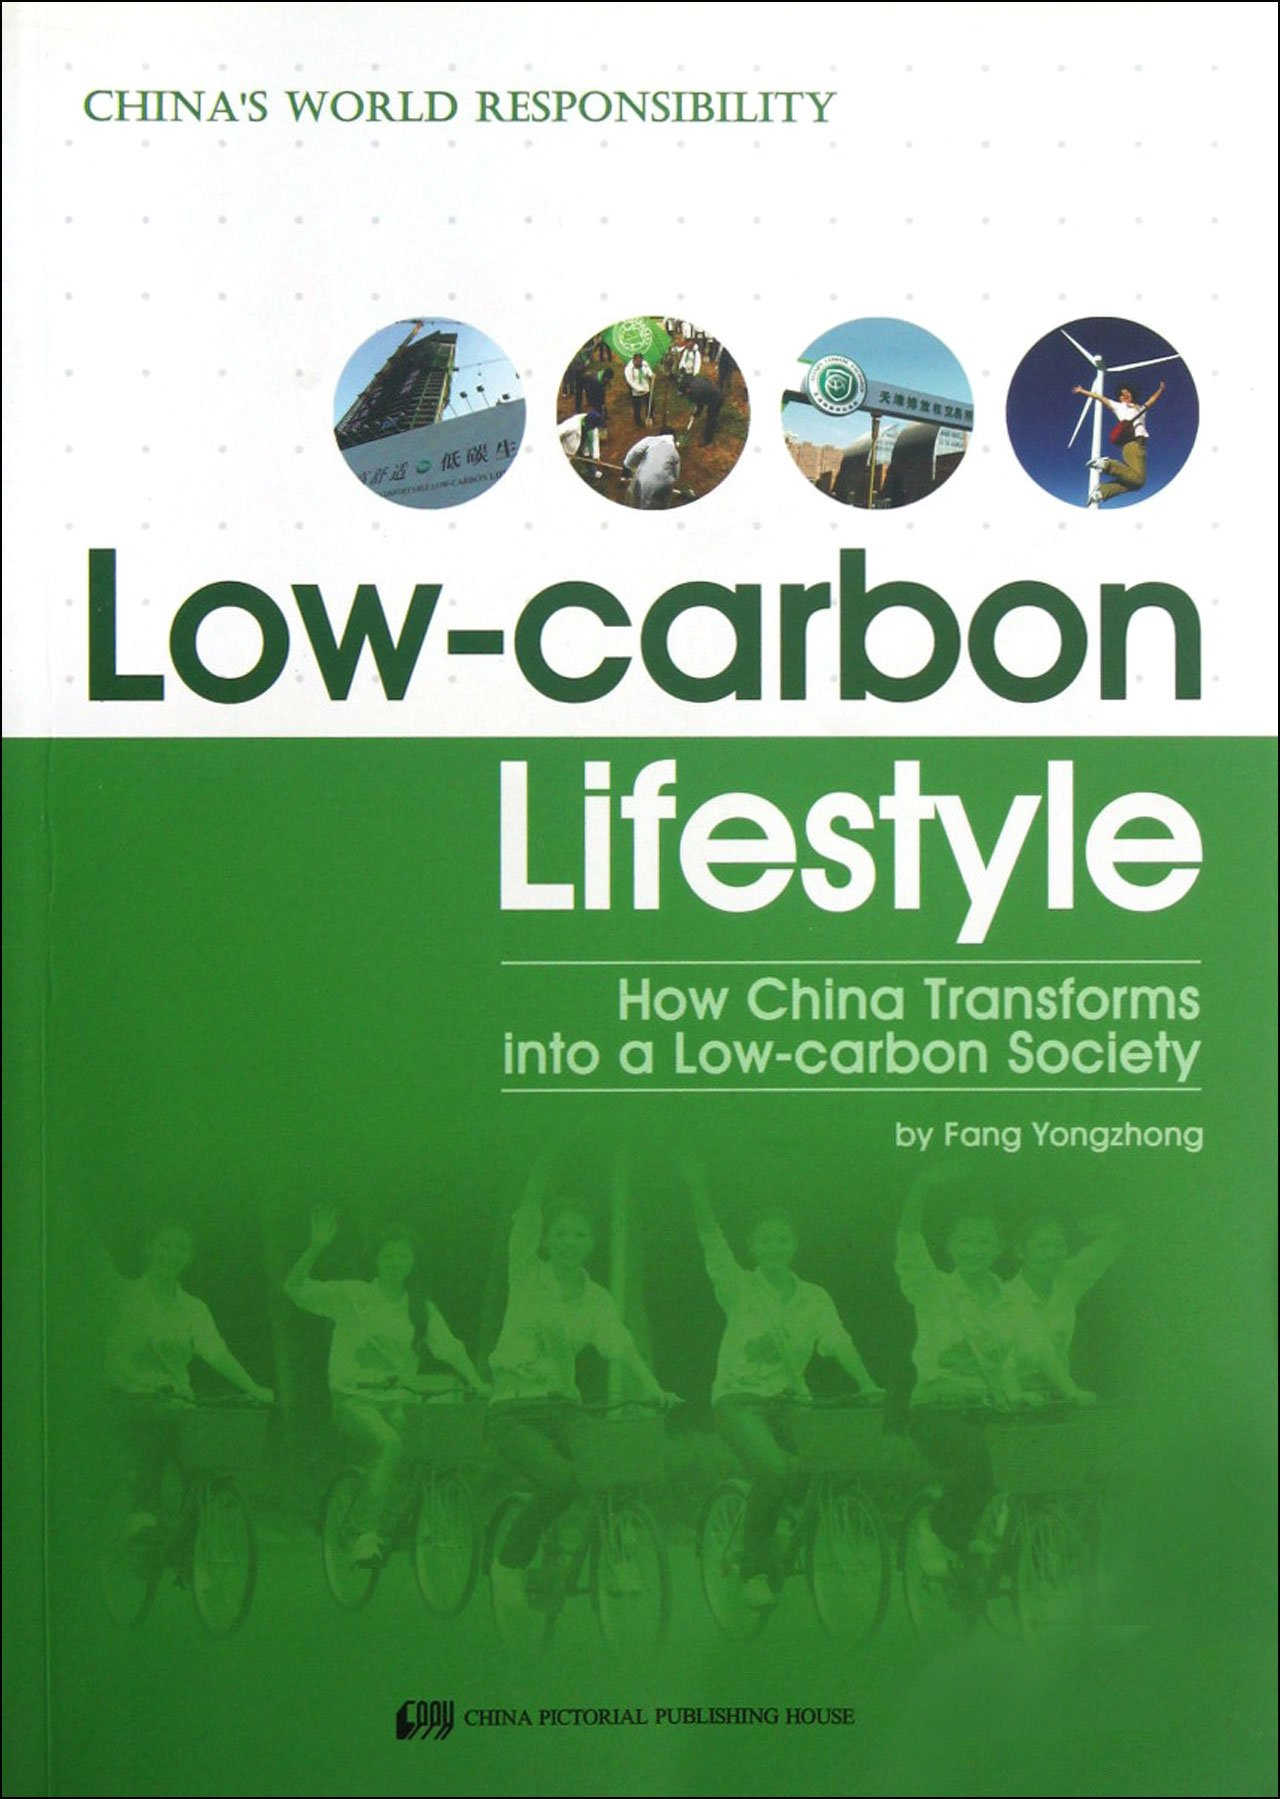 Low-carbon Lifestyle - China's World Responsibility